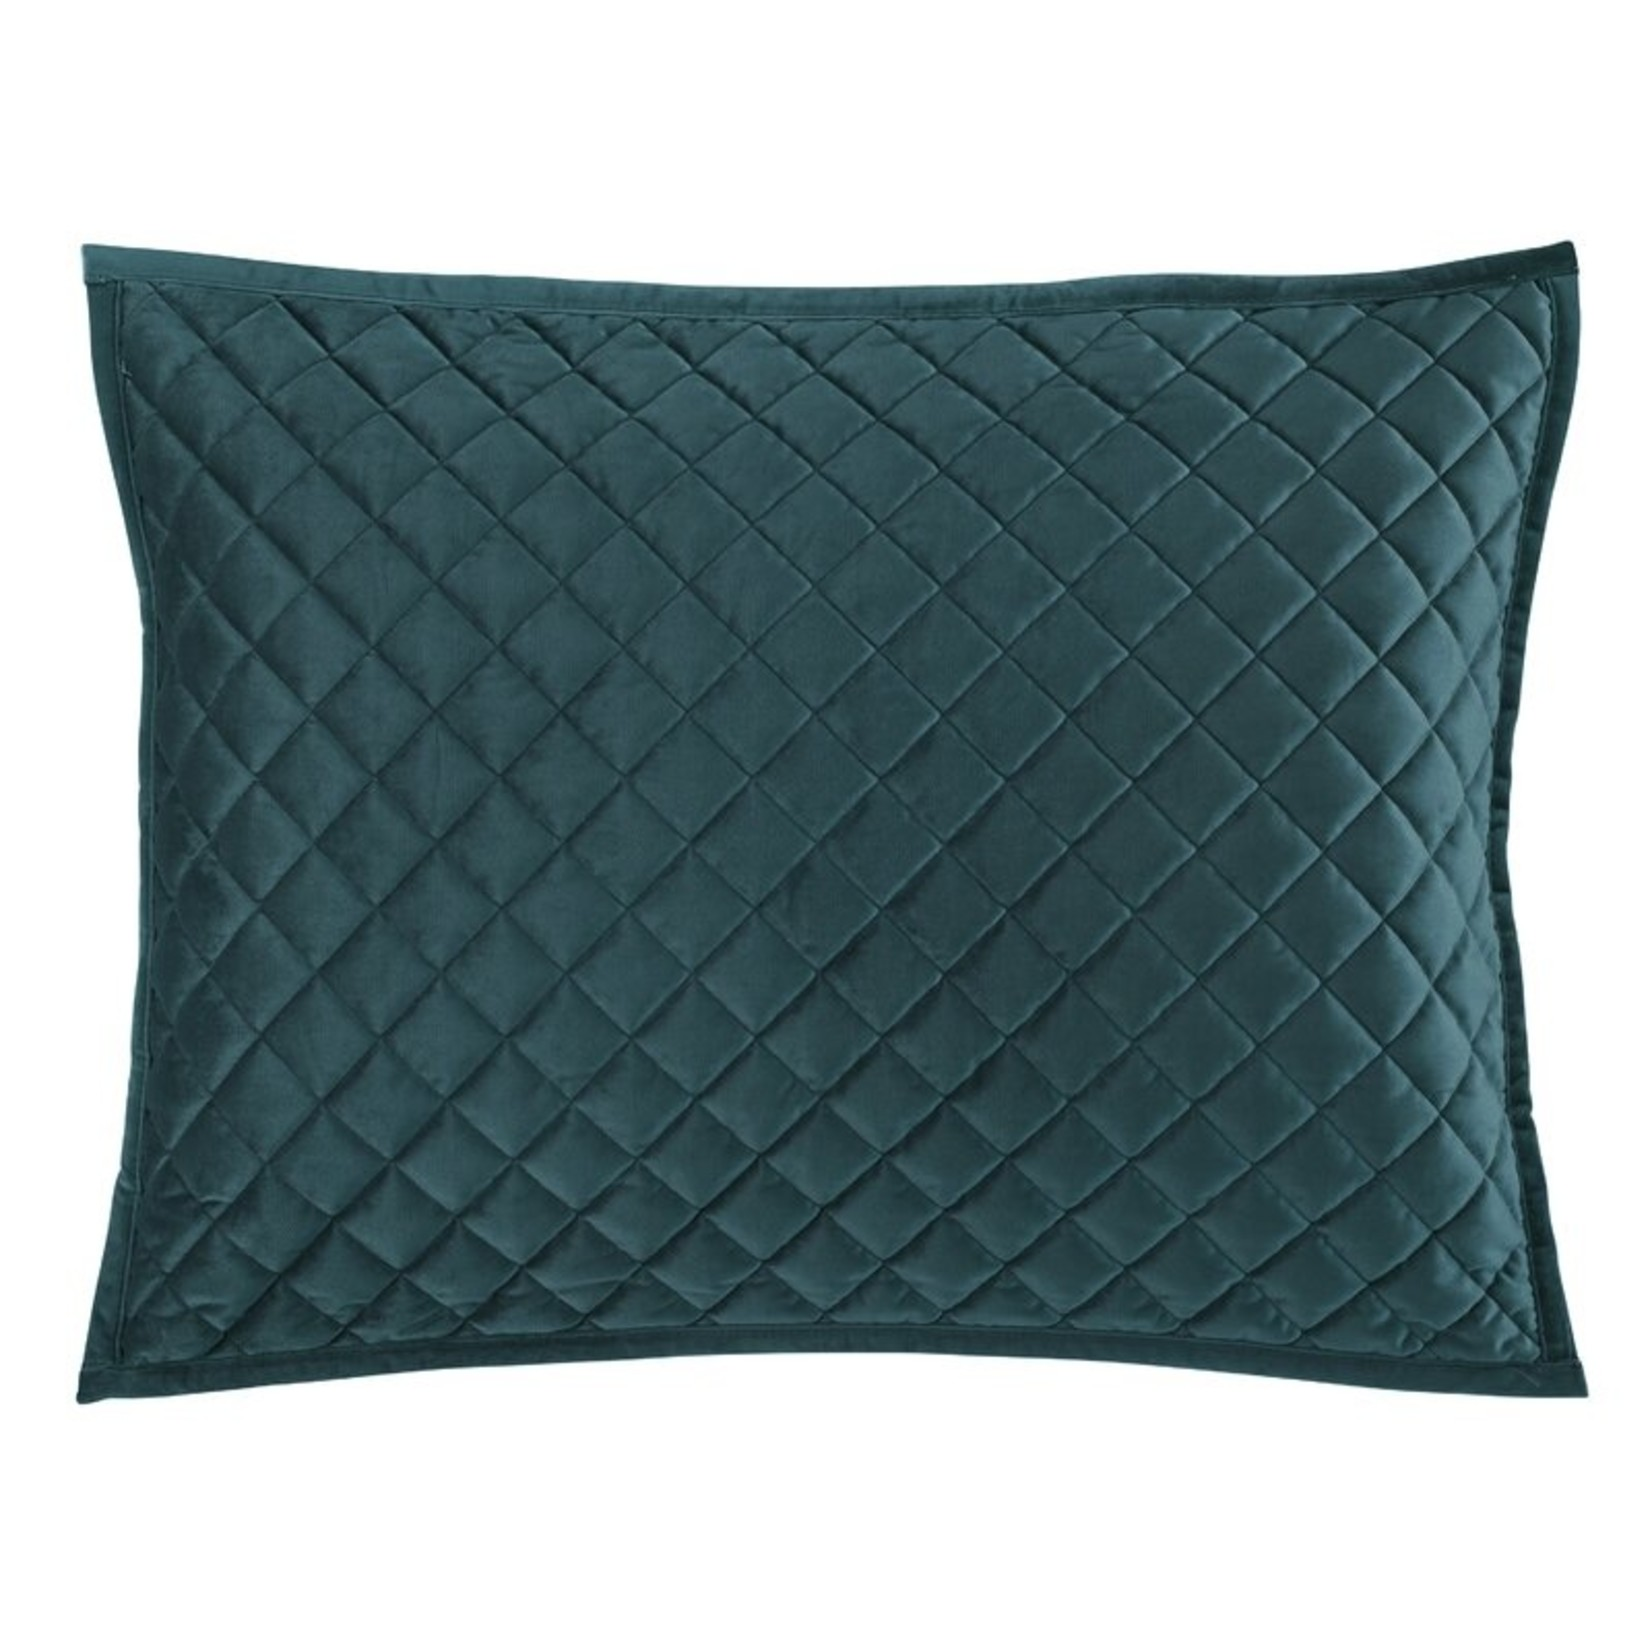 *King - Northumberland Quilted Sham (Set of 2) - Final Sale